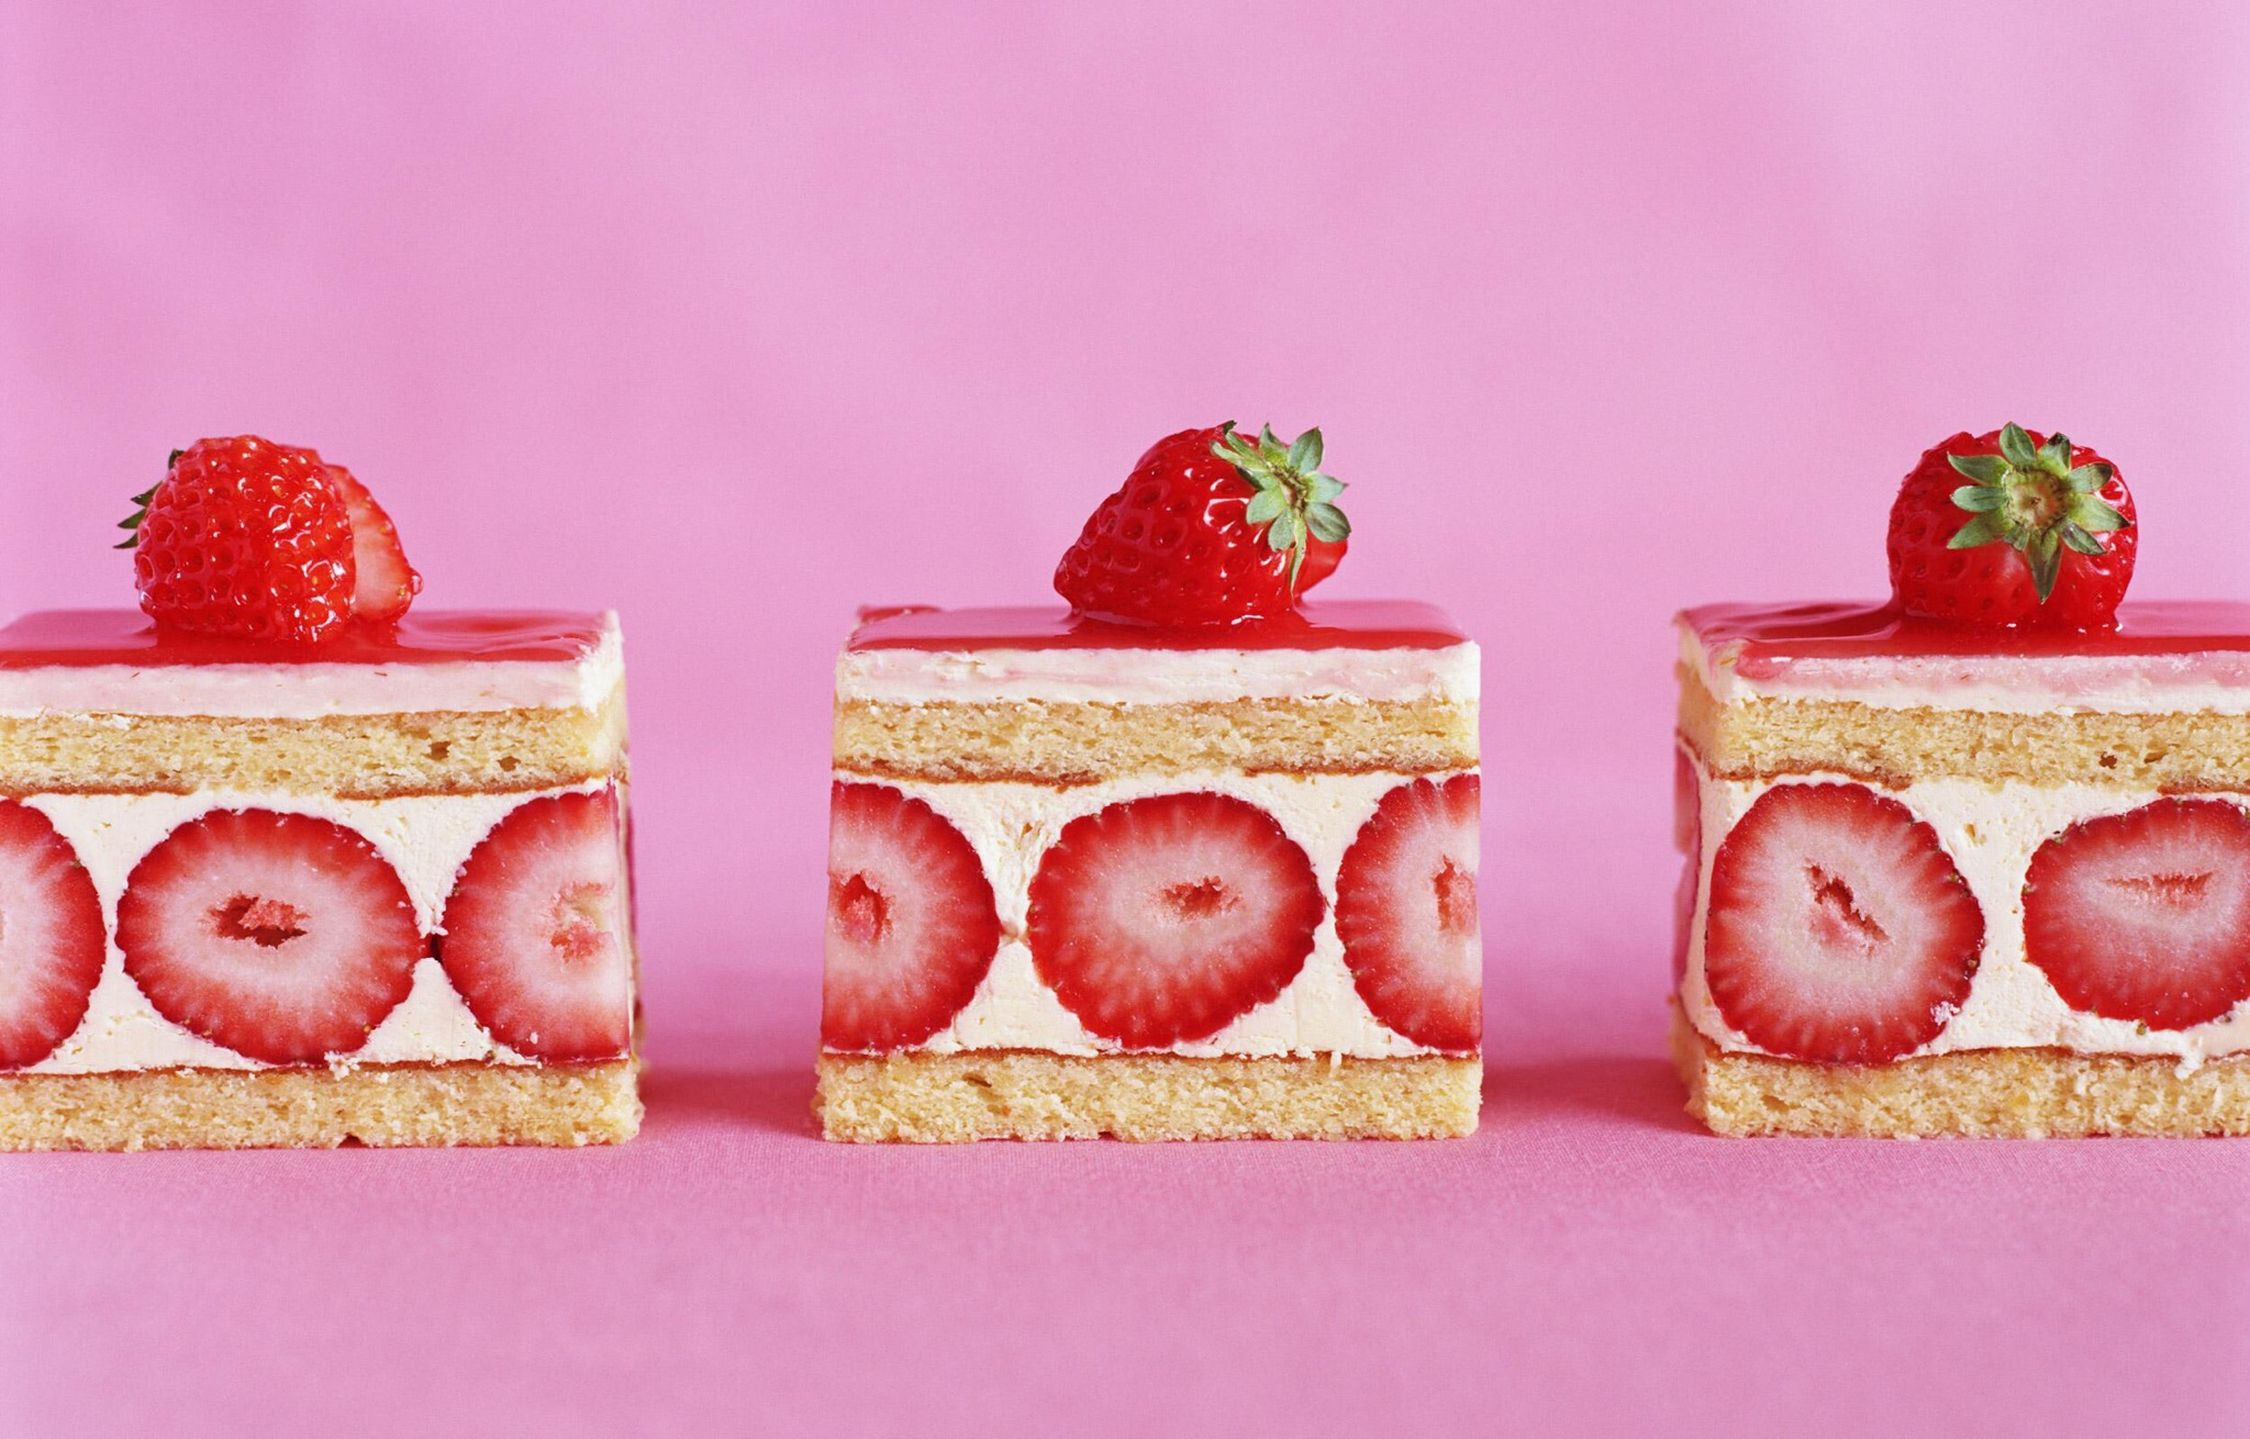 Who loves strawberries like if you do Strawberry Food Photography Perfect Cake Sincerely Loving It ♥